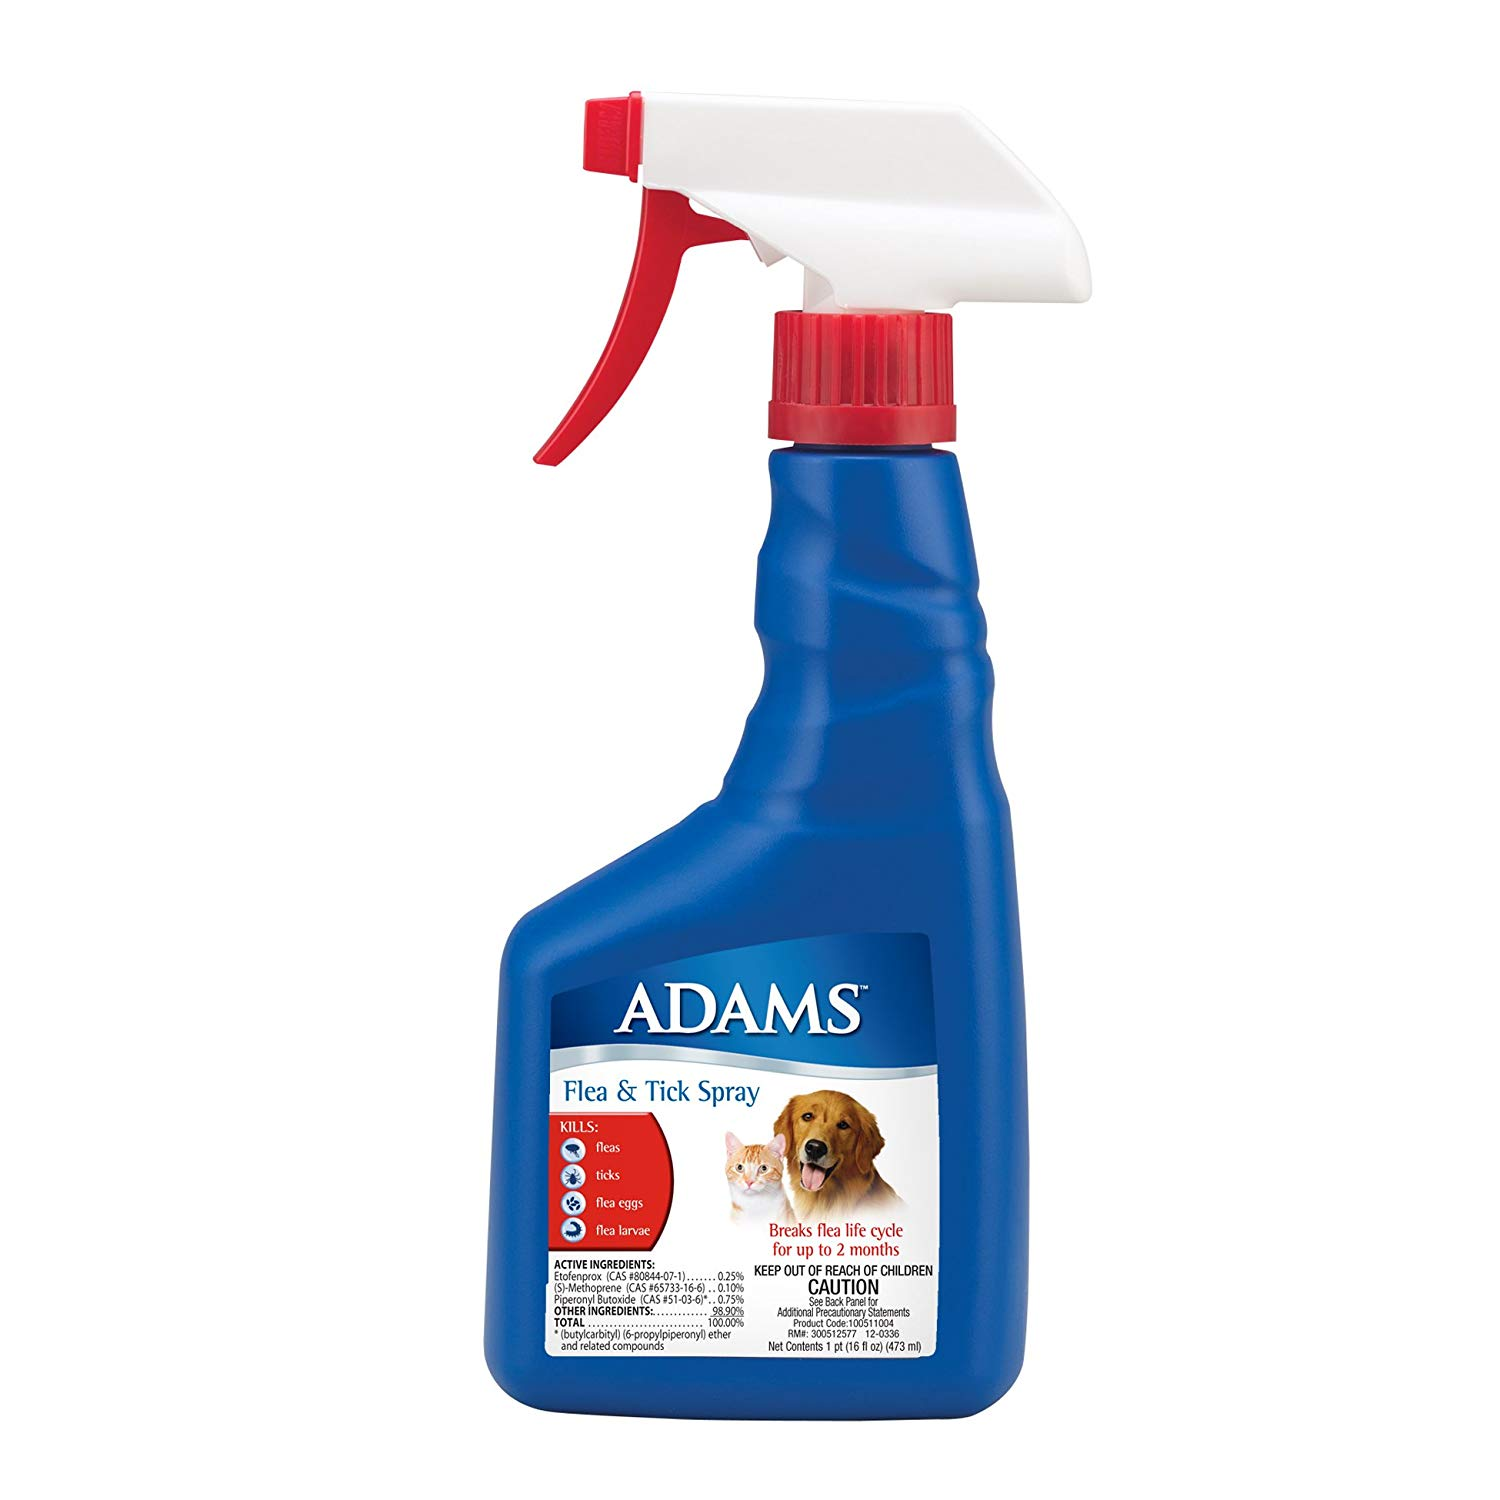 Adams Flea and Tick Spray